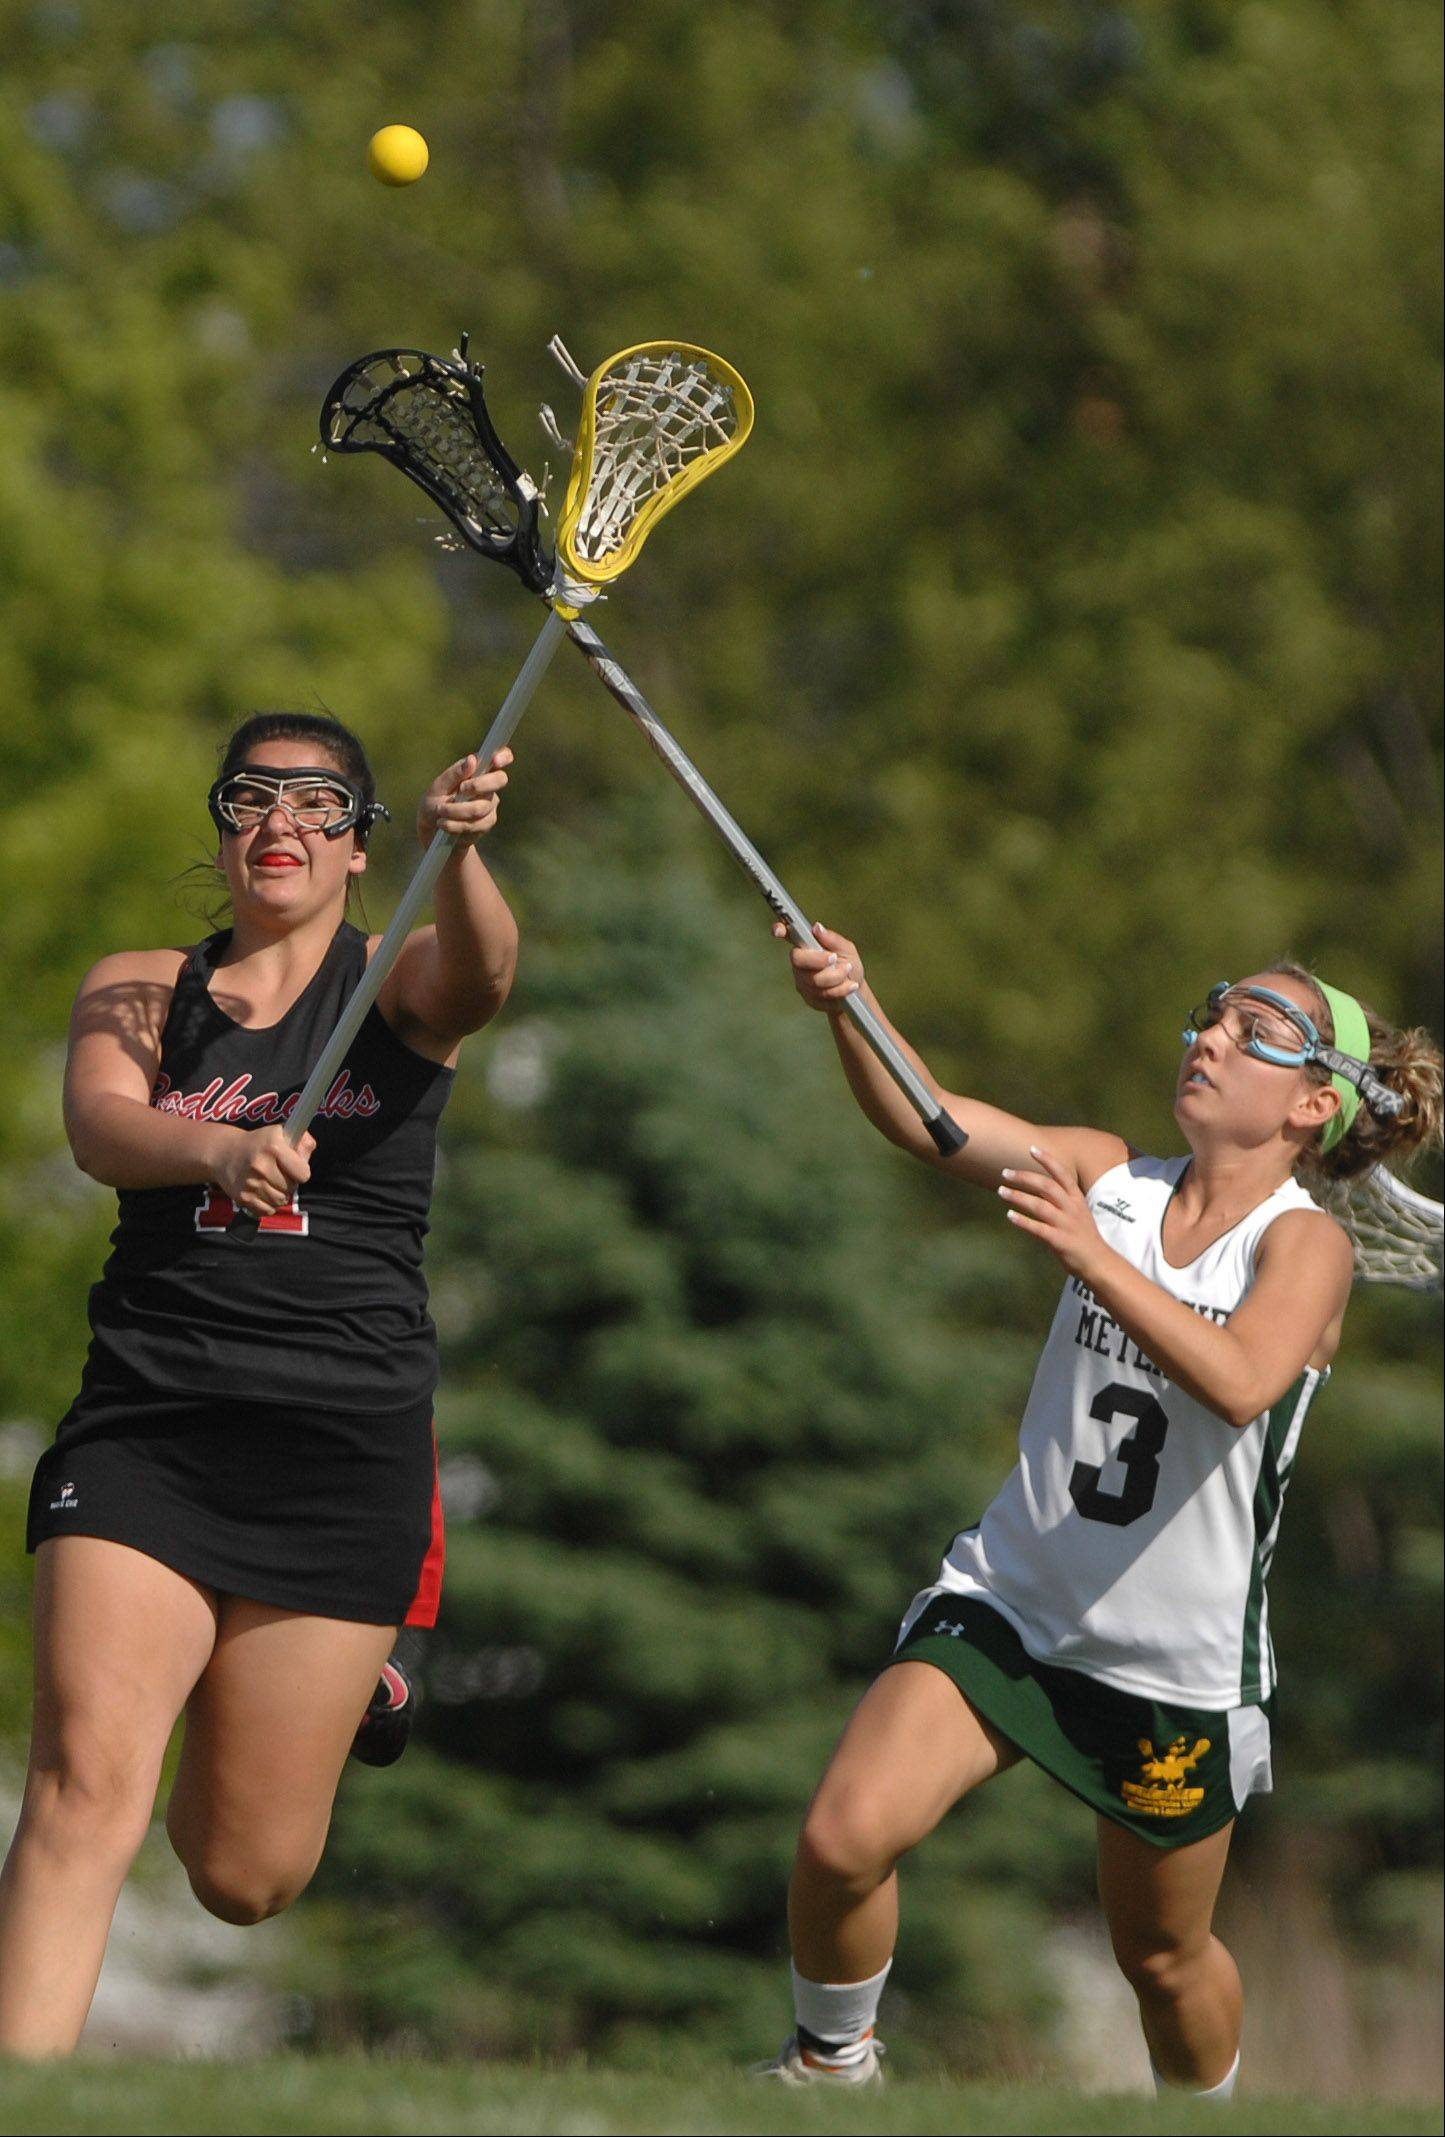 Meaghan Bedigian of Naperville Central, left, and Kim Rowell of Waubonsie/Metea chase down a ball.